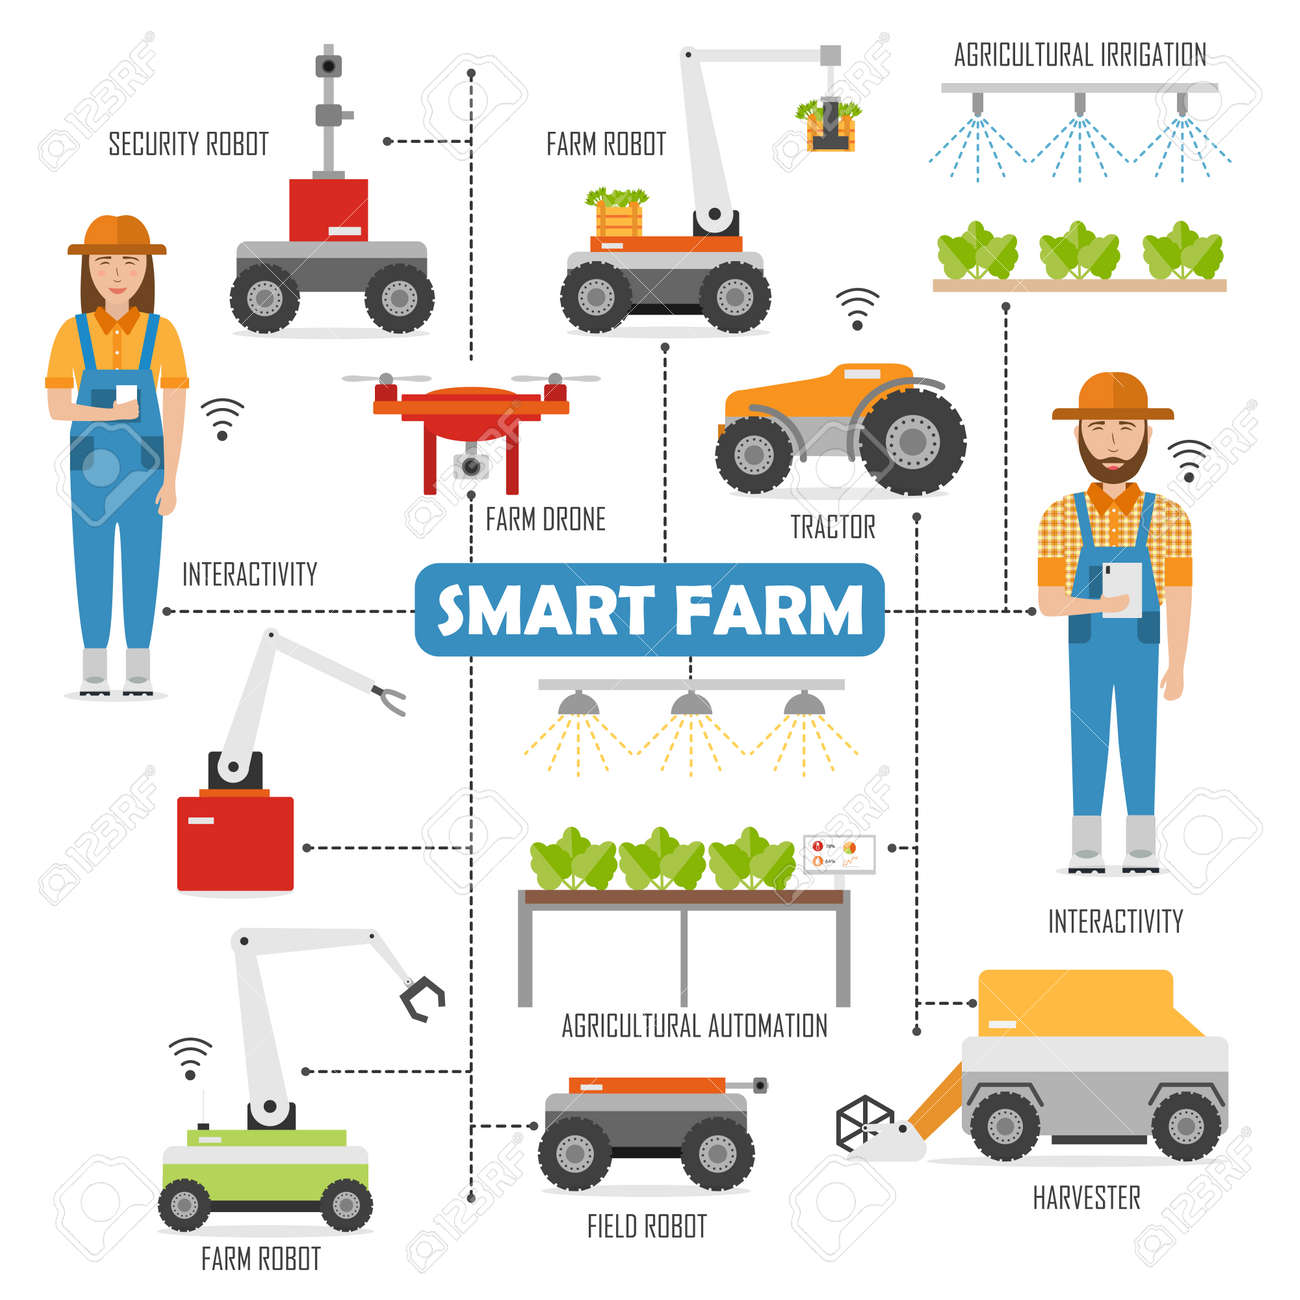 Agricultural smart farm flowchart with images of robots - 157153306